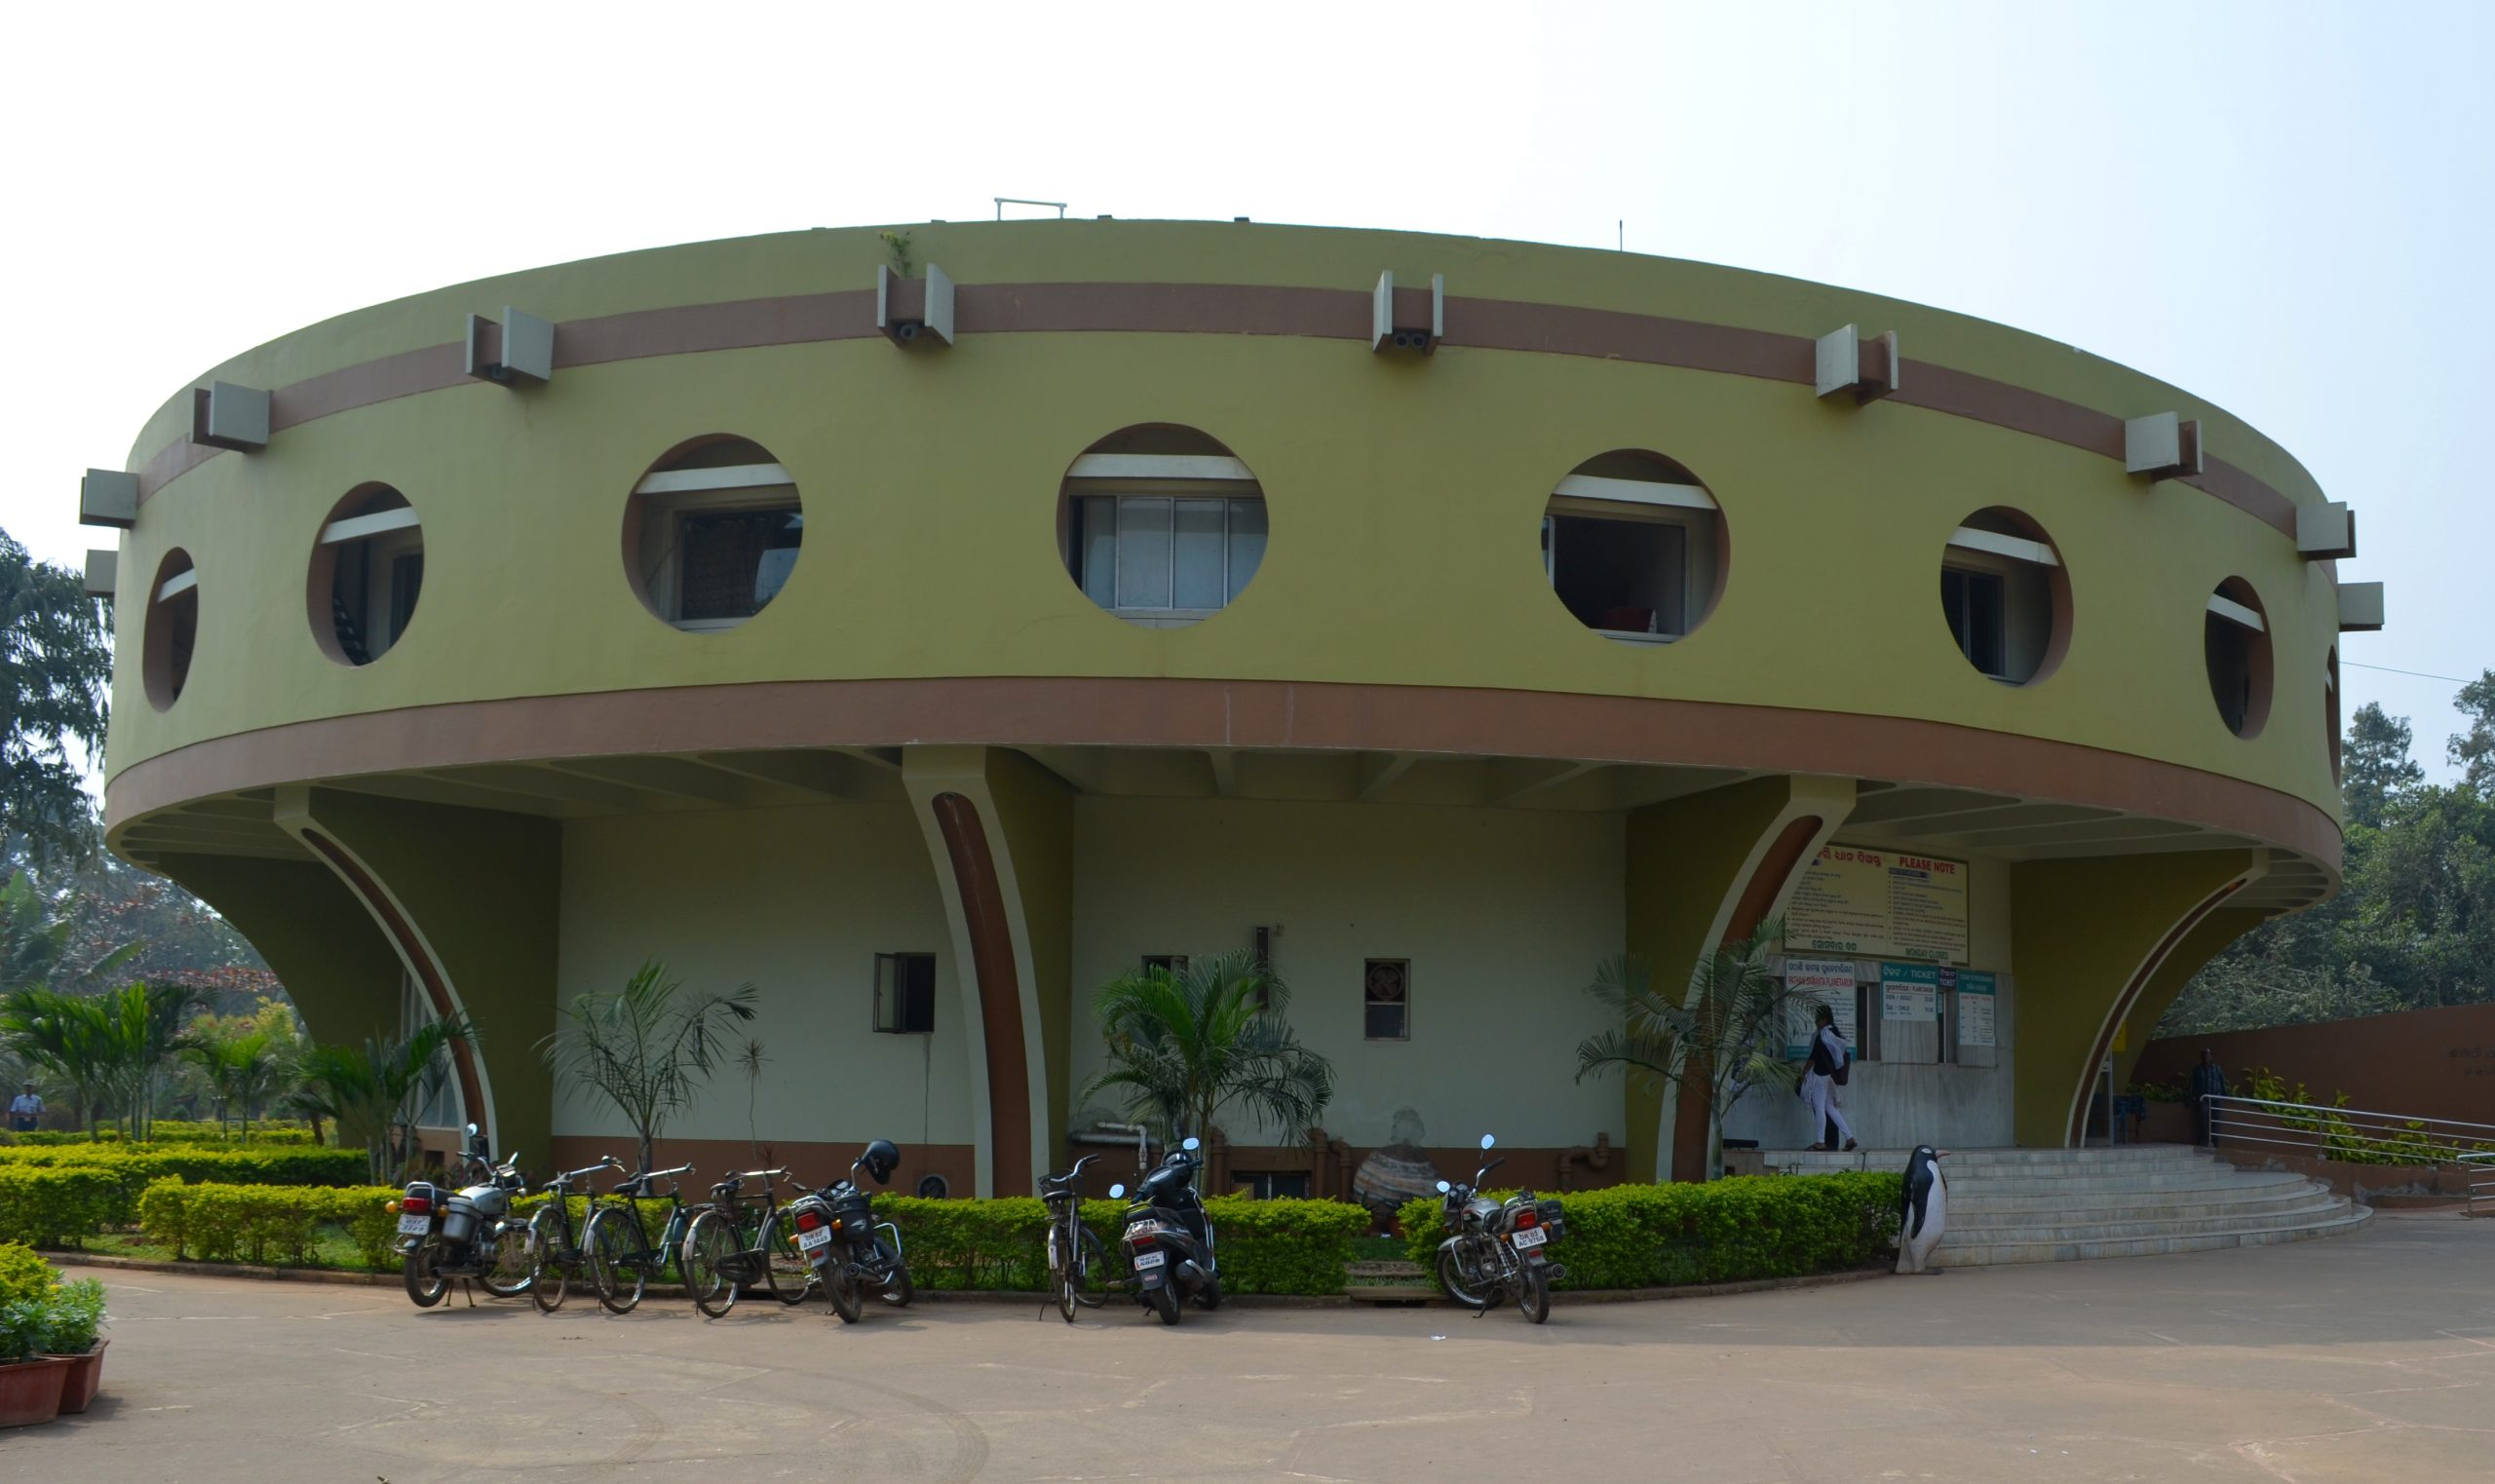 Most Popular Place To Visit In Bhubaneswar - Pathani Samanta Planetarium